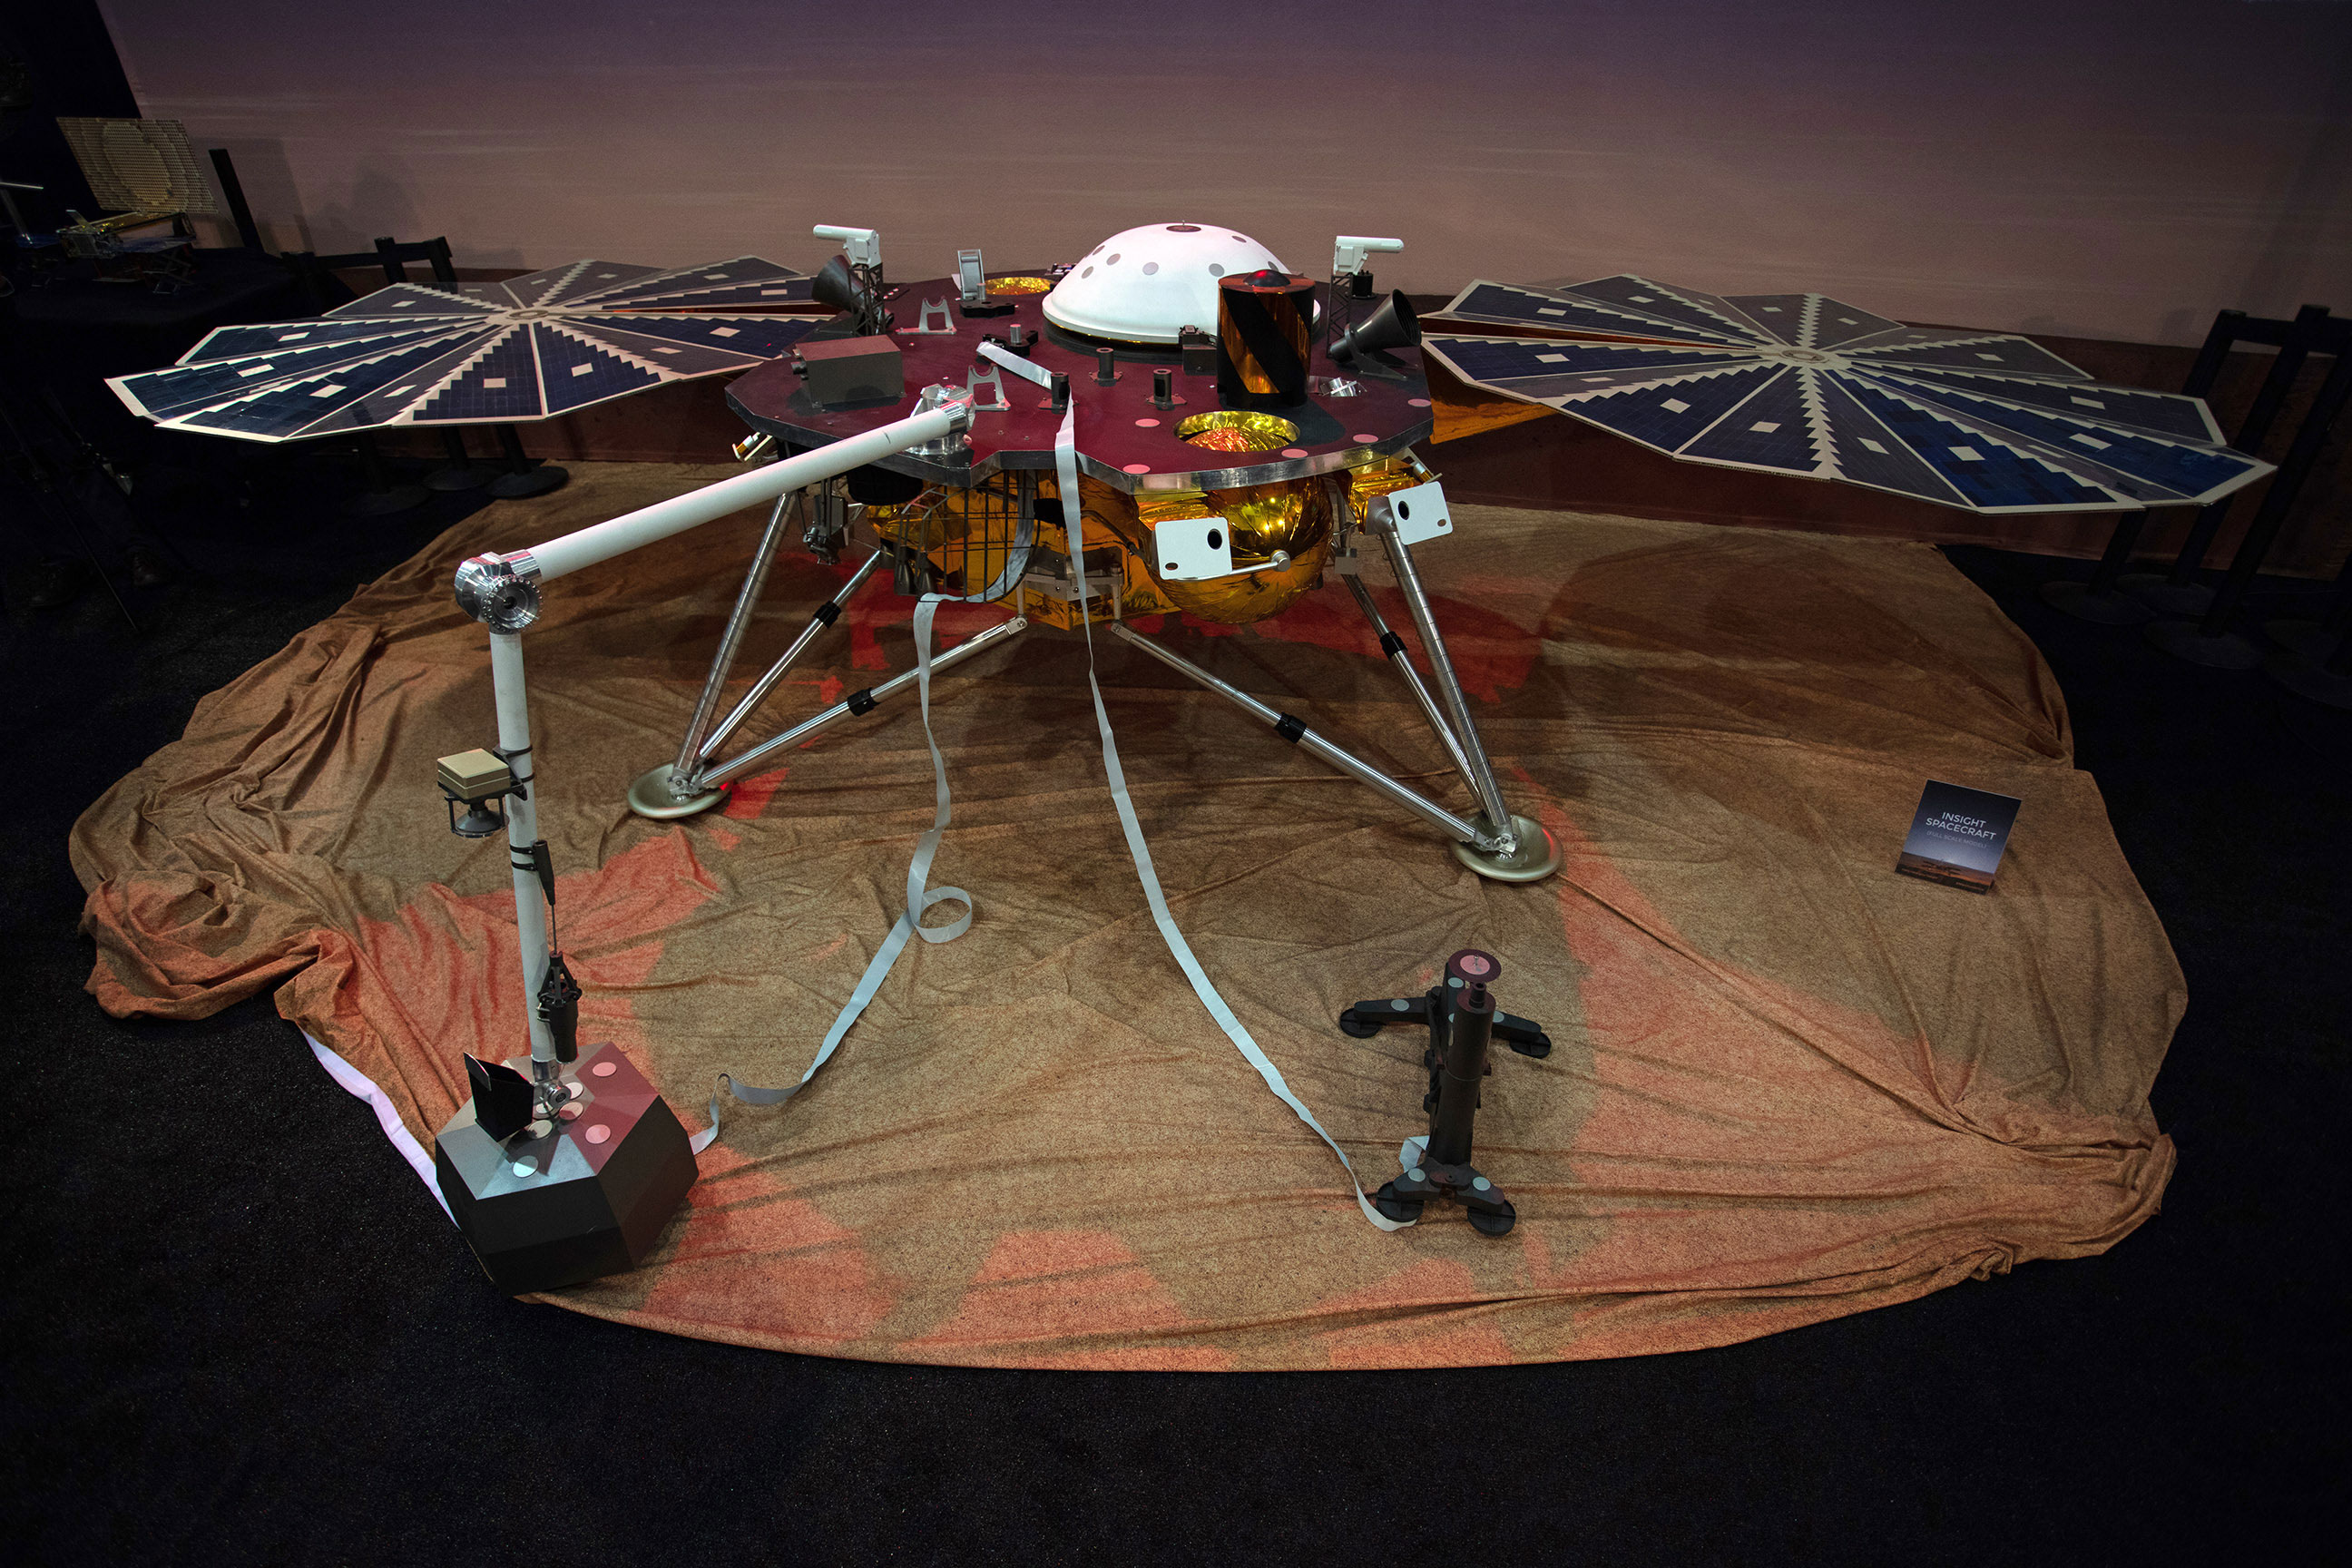 With deployed solar arrays, InSight is 19 feet wide (6 meters), just over 3 feet tall (~1 meter), and weighs only 790 pounds (358 kilograms).  This is a full-scale model of lander.  Photo: Jon Brack